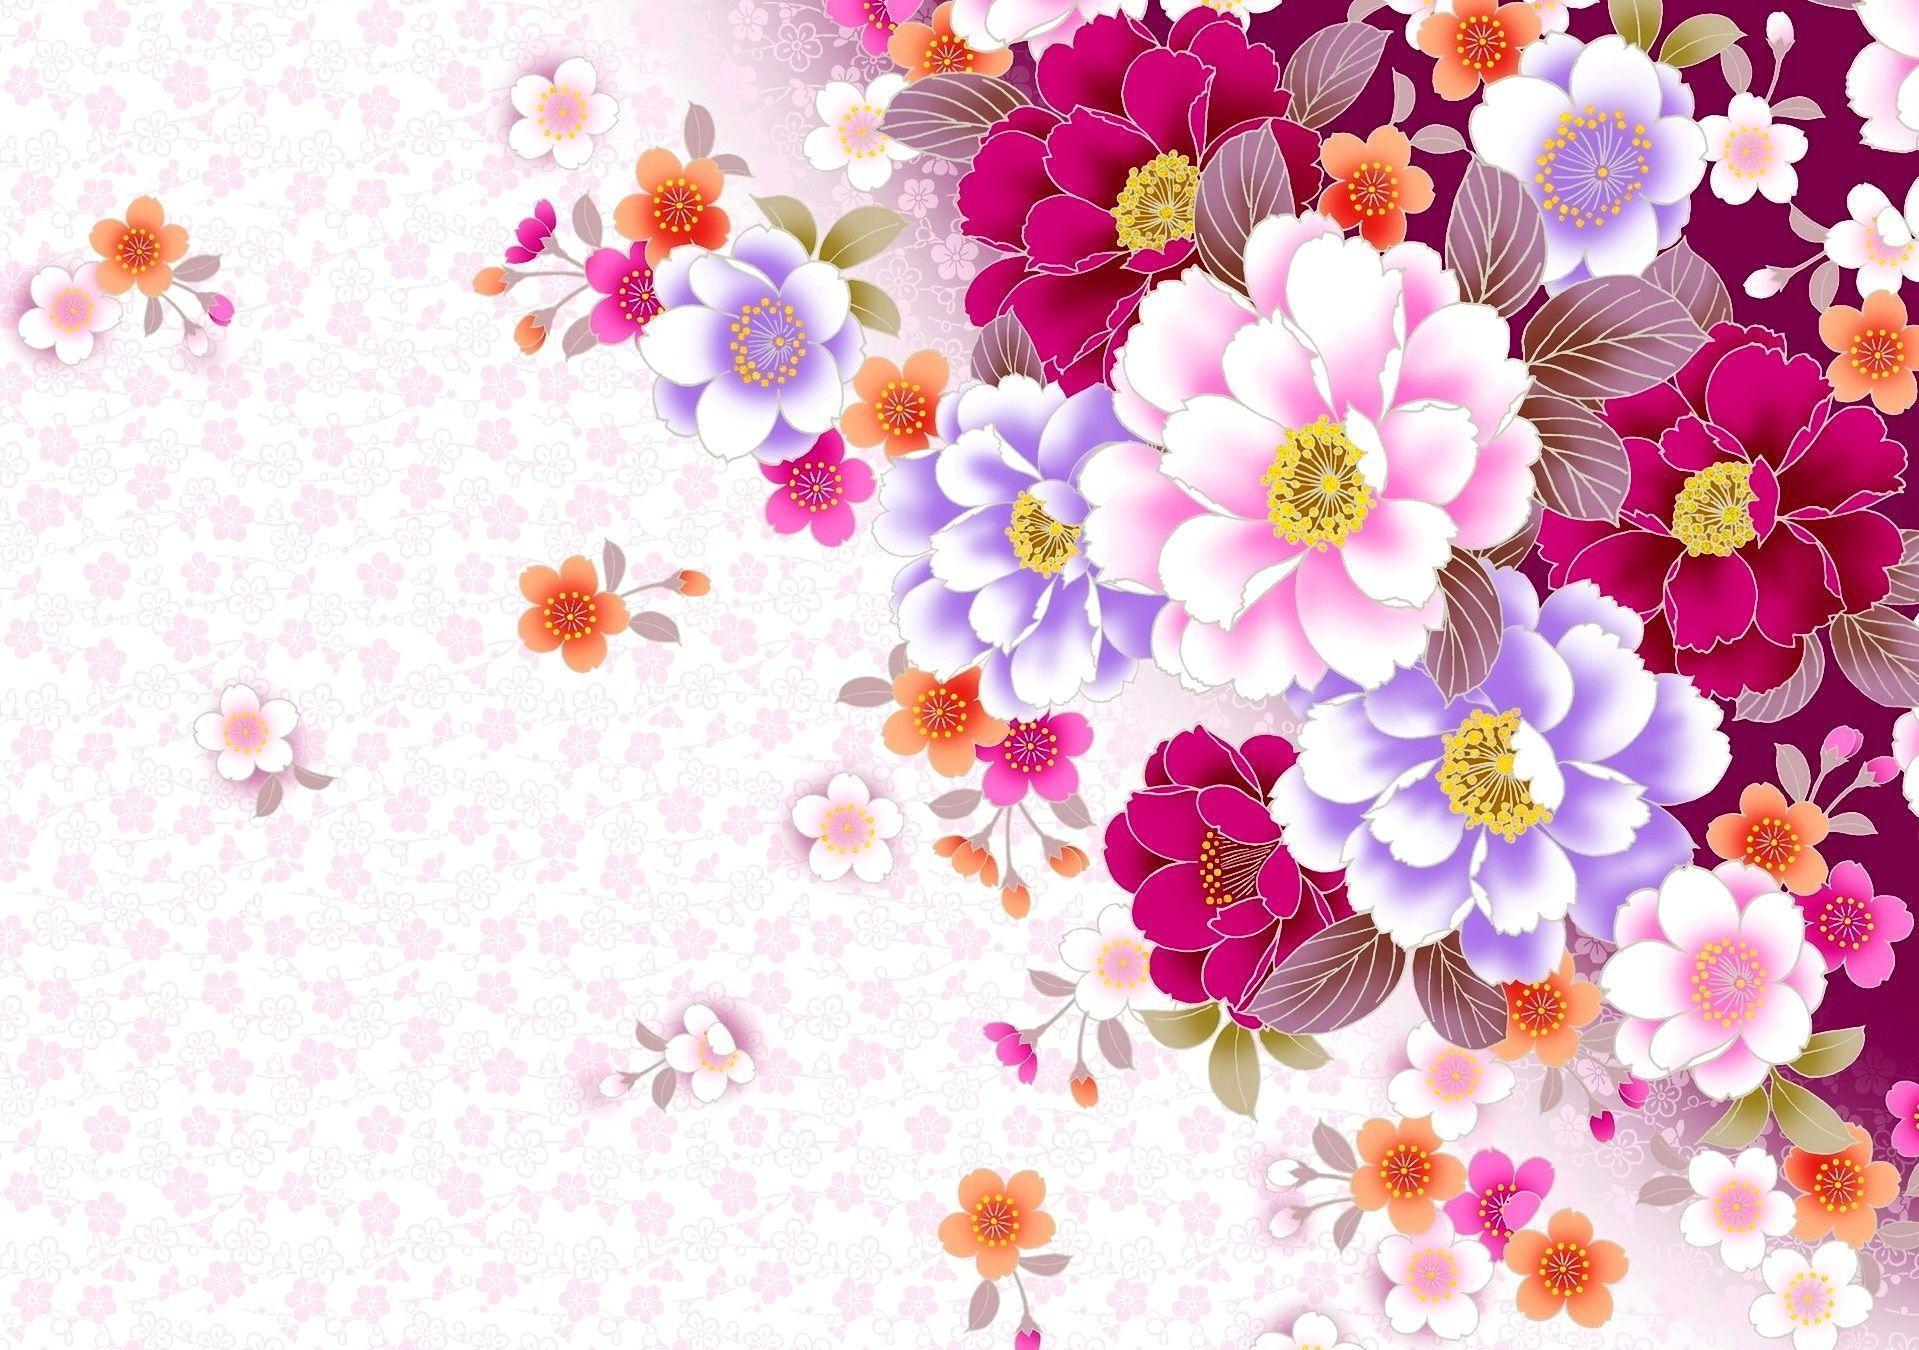 floral desktop wallpaper